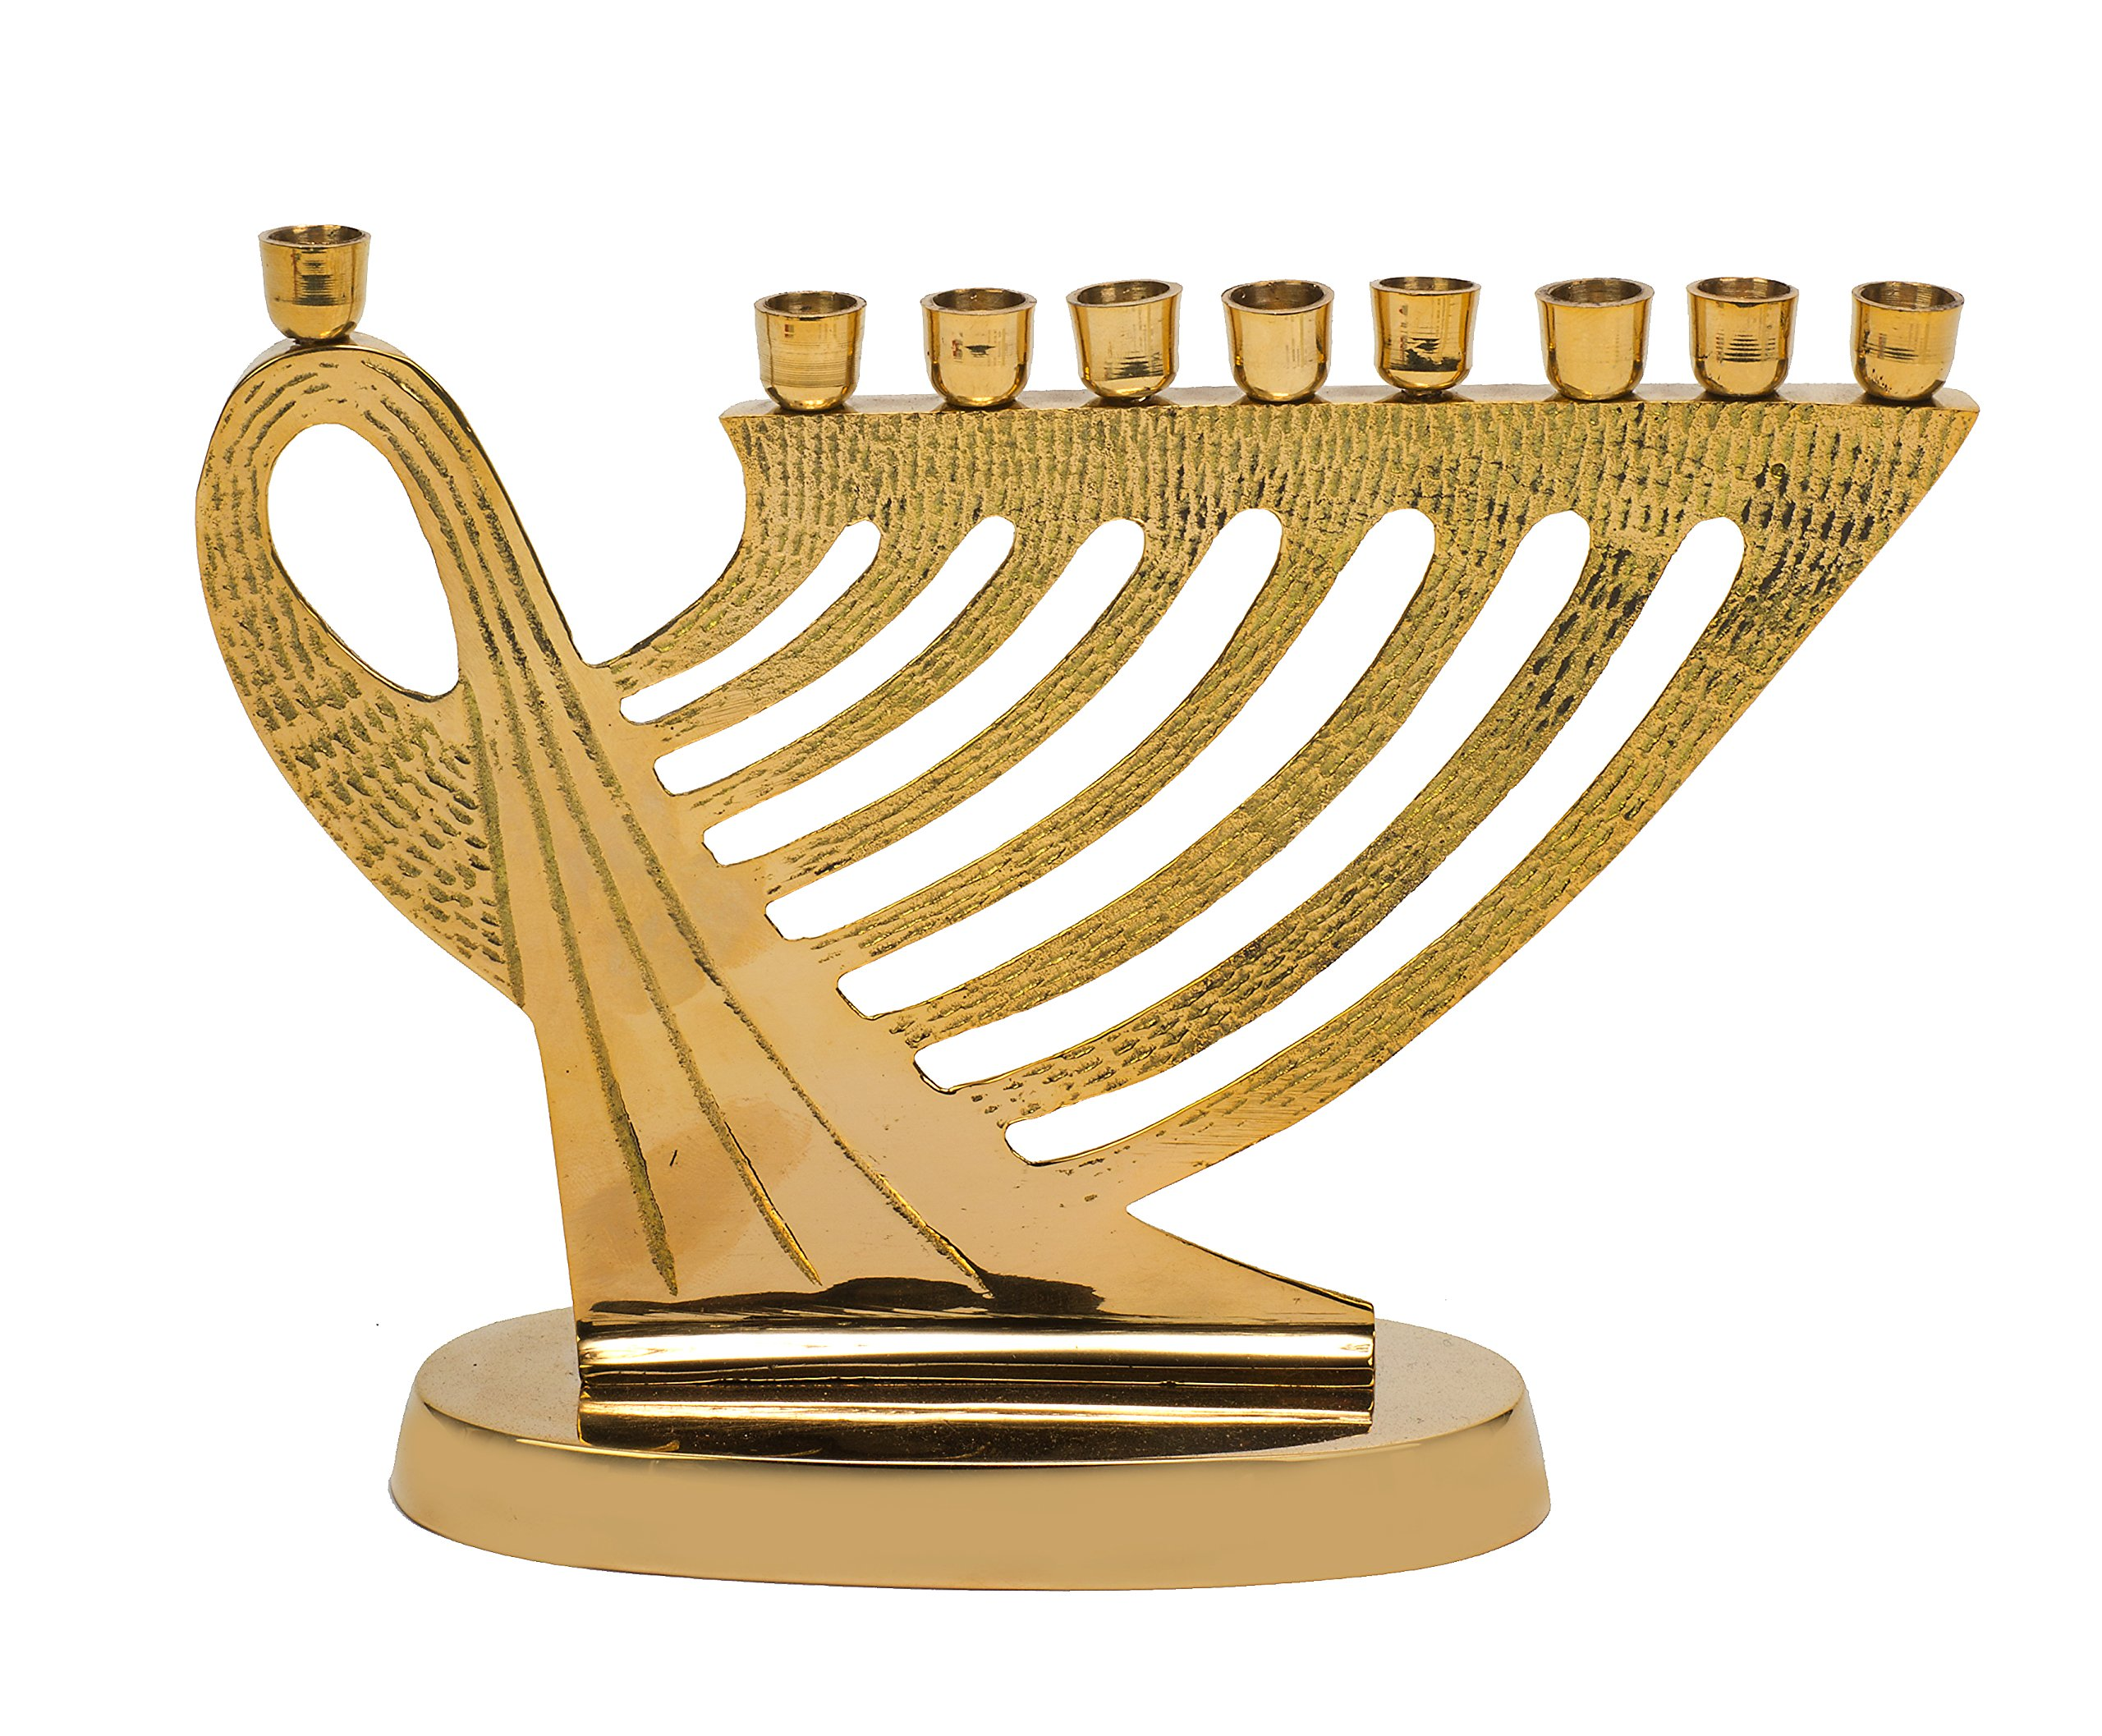 Biedermann & Sons Brass Harp Design Menorah Candle